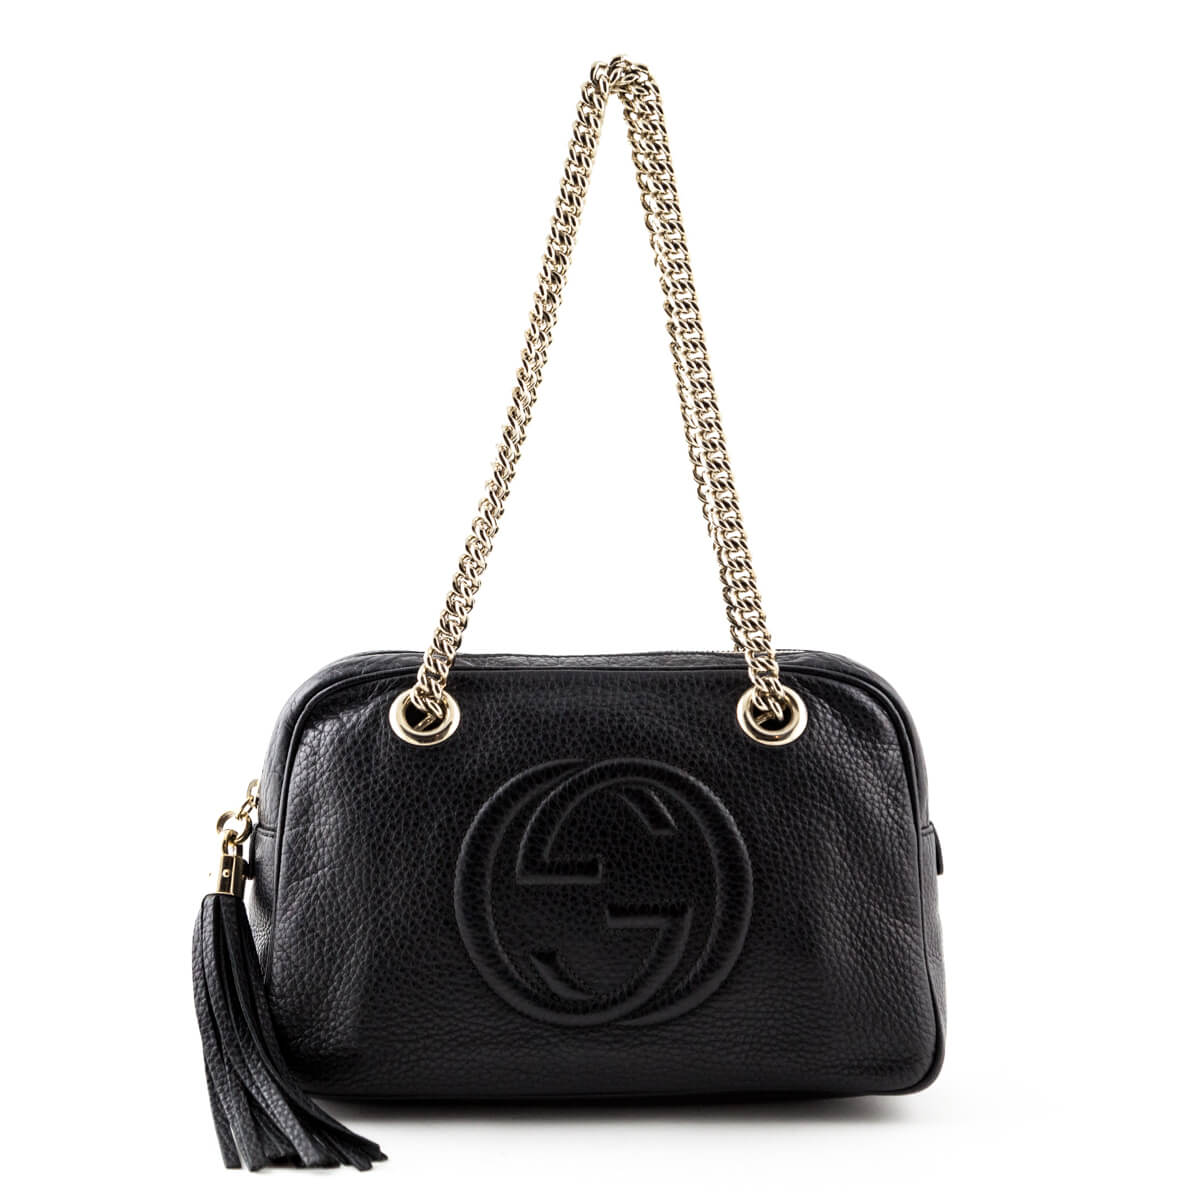 Gucci Black Small Soho Chain Shoulder bag - Secondhand ...